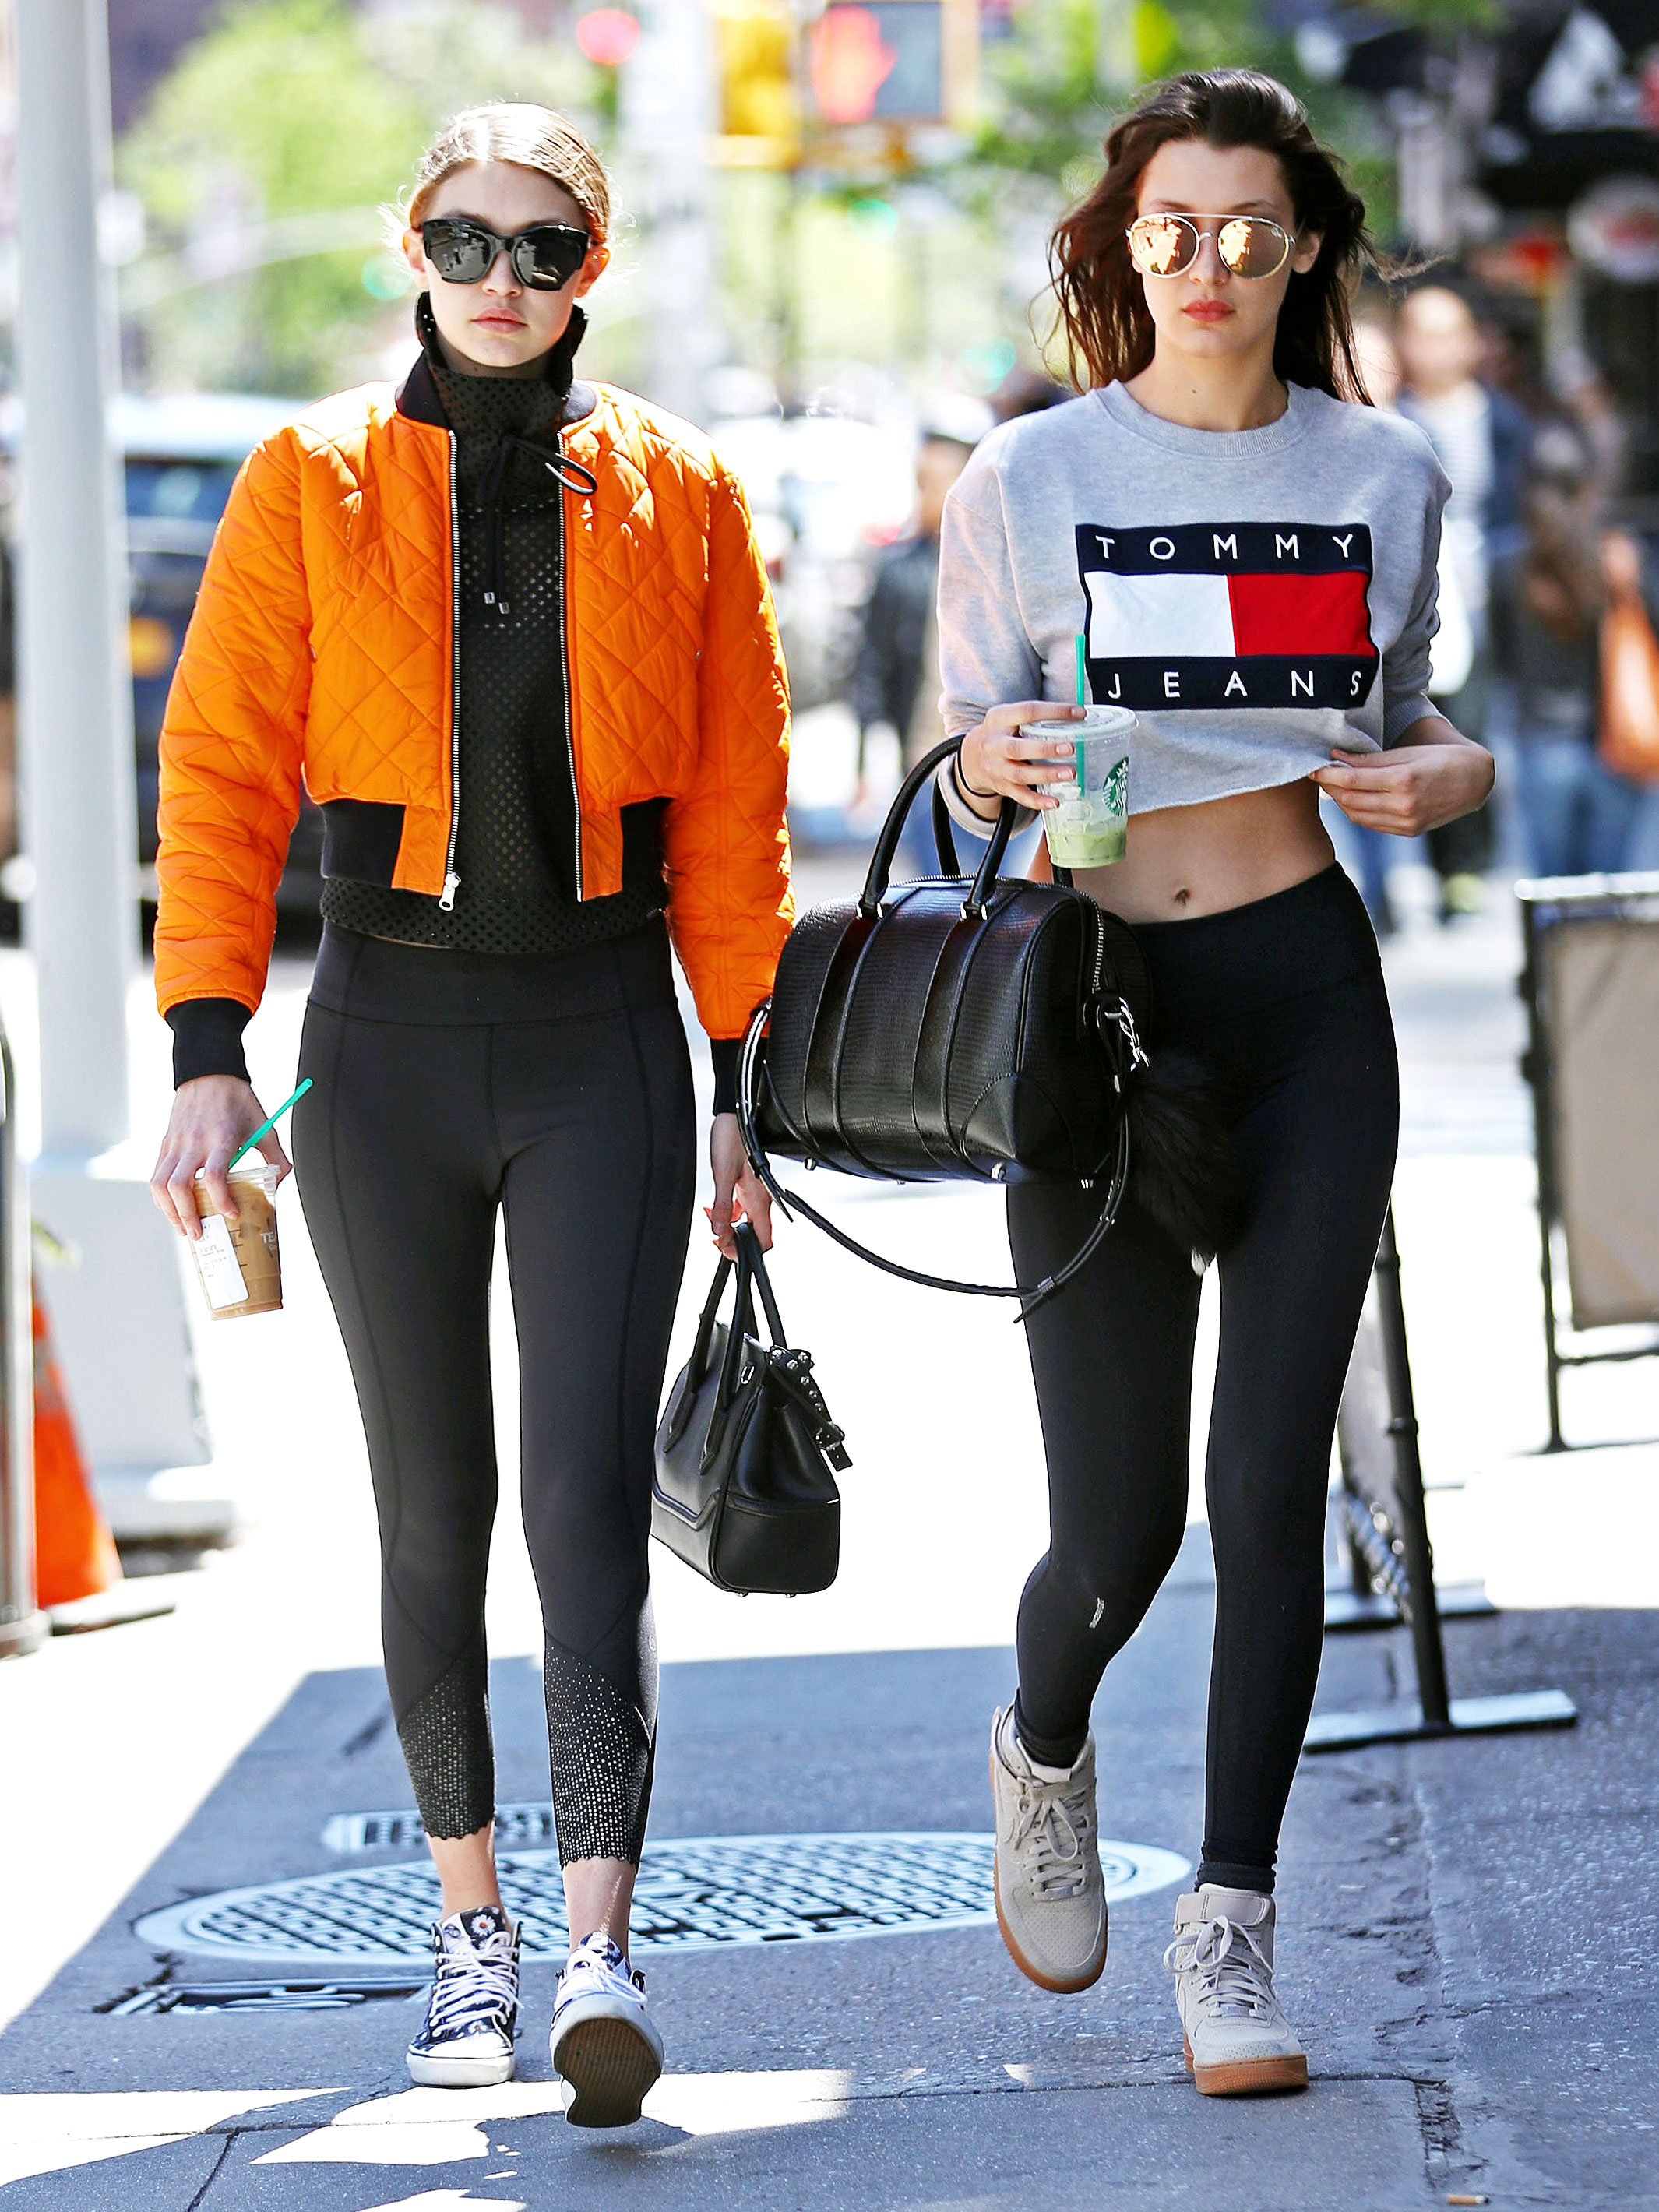 Kendall Jenner and Bella Hadid are the Stars of the Ochirly Fall 2019 Campaign Kendall Jenner and Bella Hadid are the Stars of the Ochirly Fall 2019 Campaign new pictures